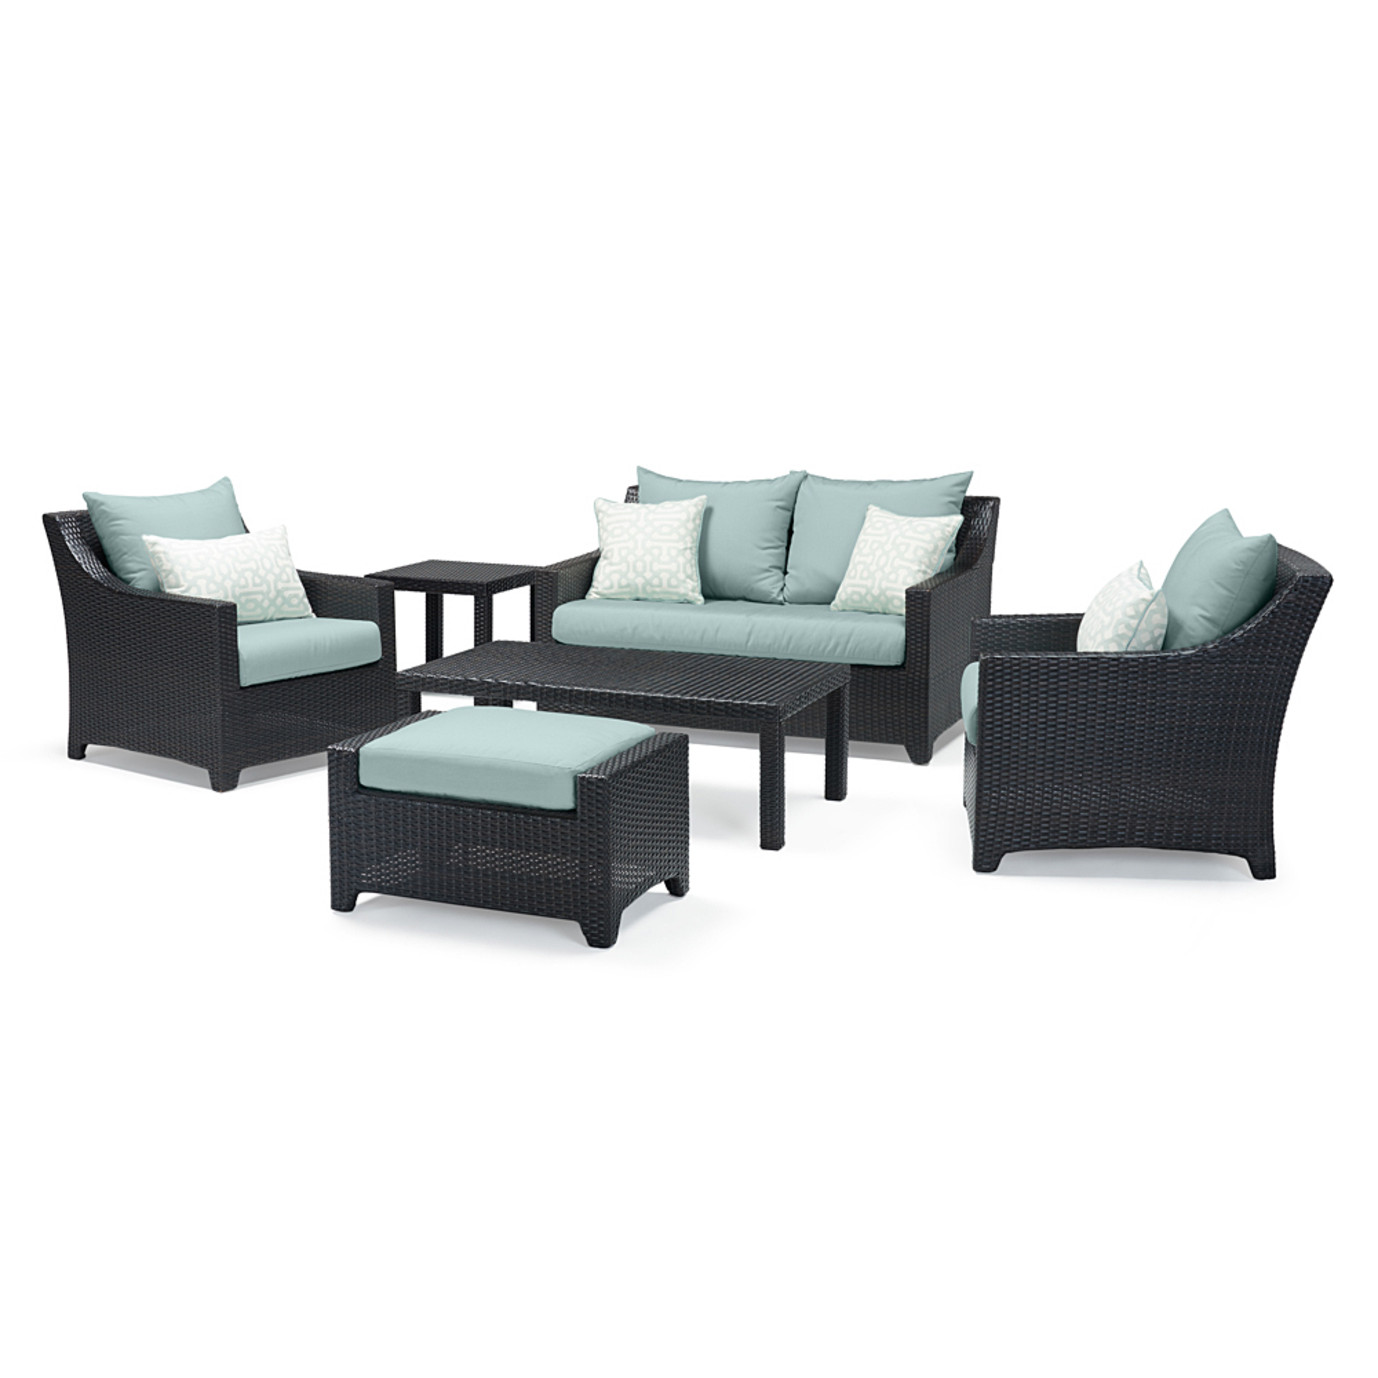 Deco™ 6pc Love and Club Seating Set - Spa Blue